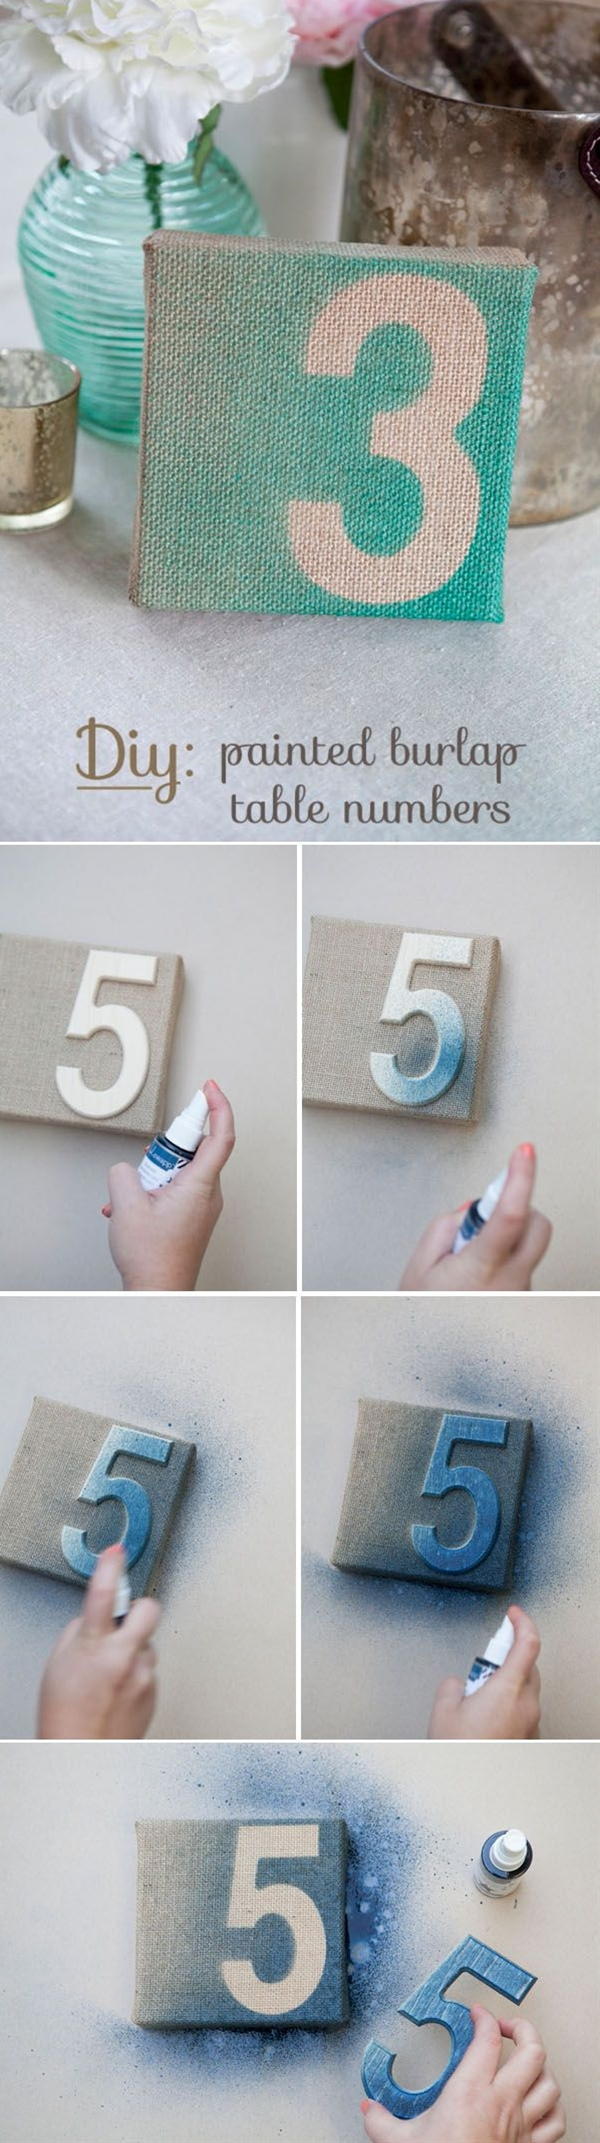 After playing with the color shine, I knew those burlap canvases would make the perfect palette! So without further ado, here are my painted burlap table numbers… which would be perfect for any rustic or shabby chic wedding!